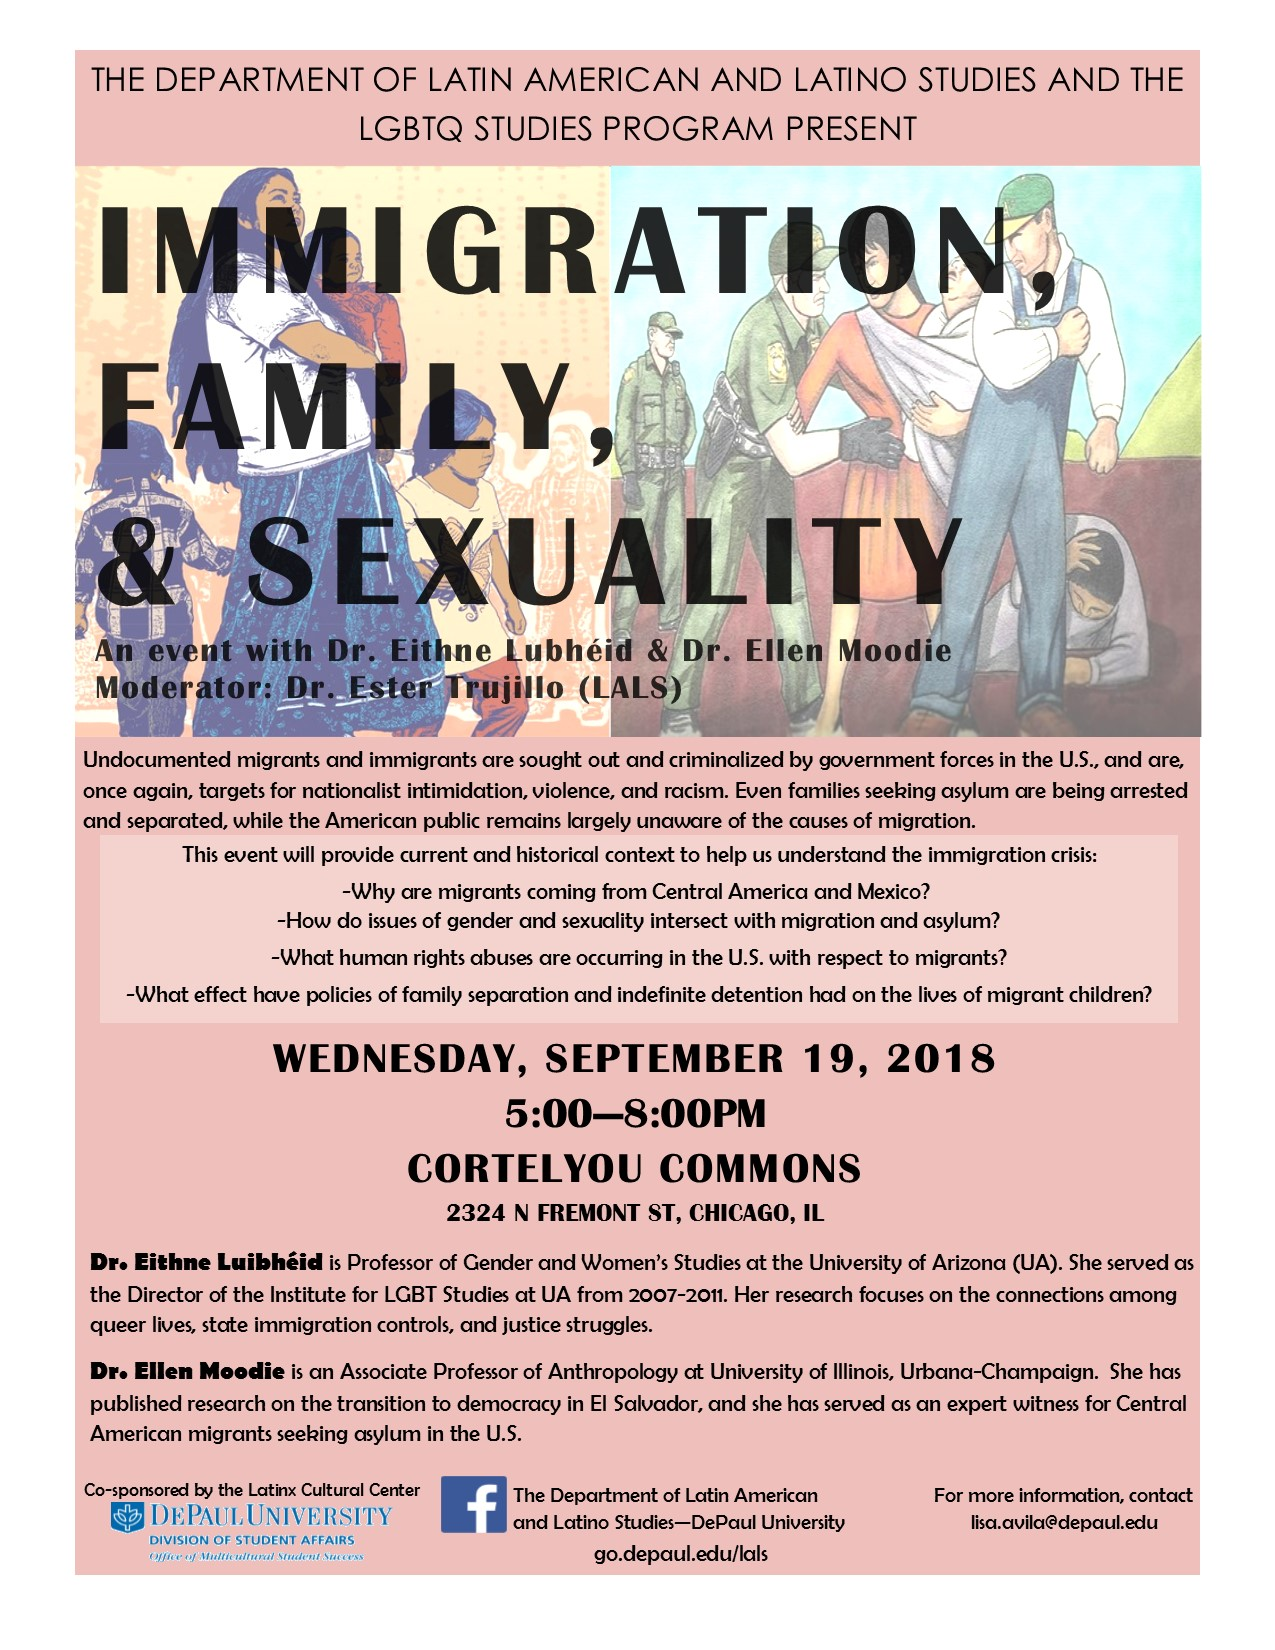 immigrationfamilysexuality